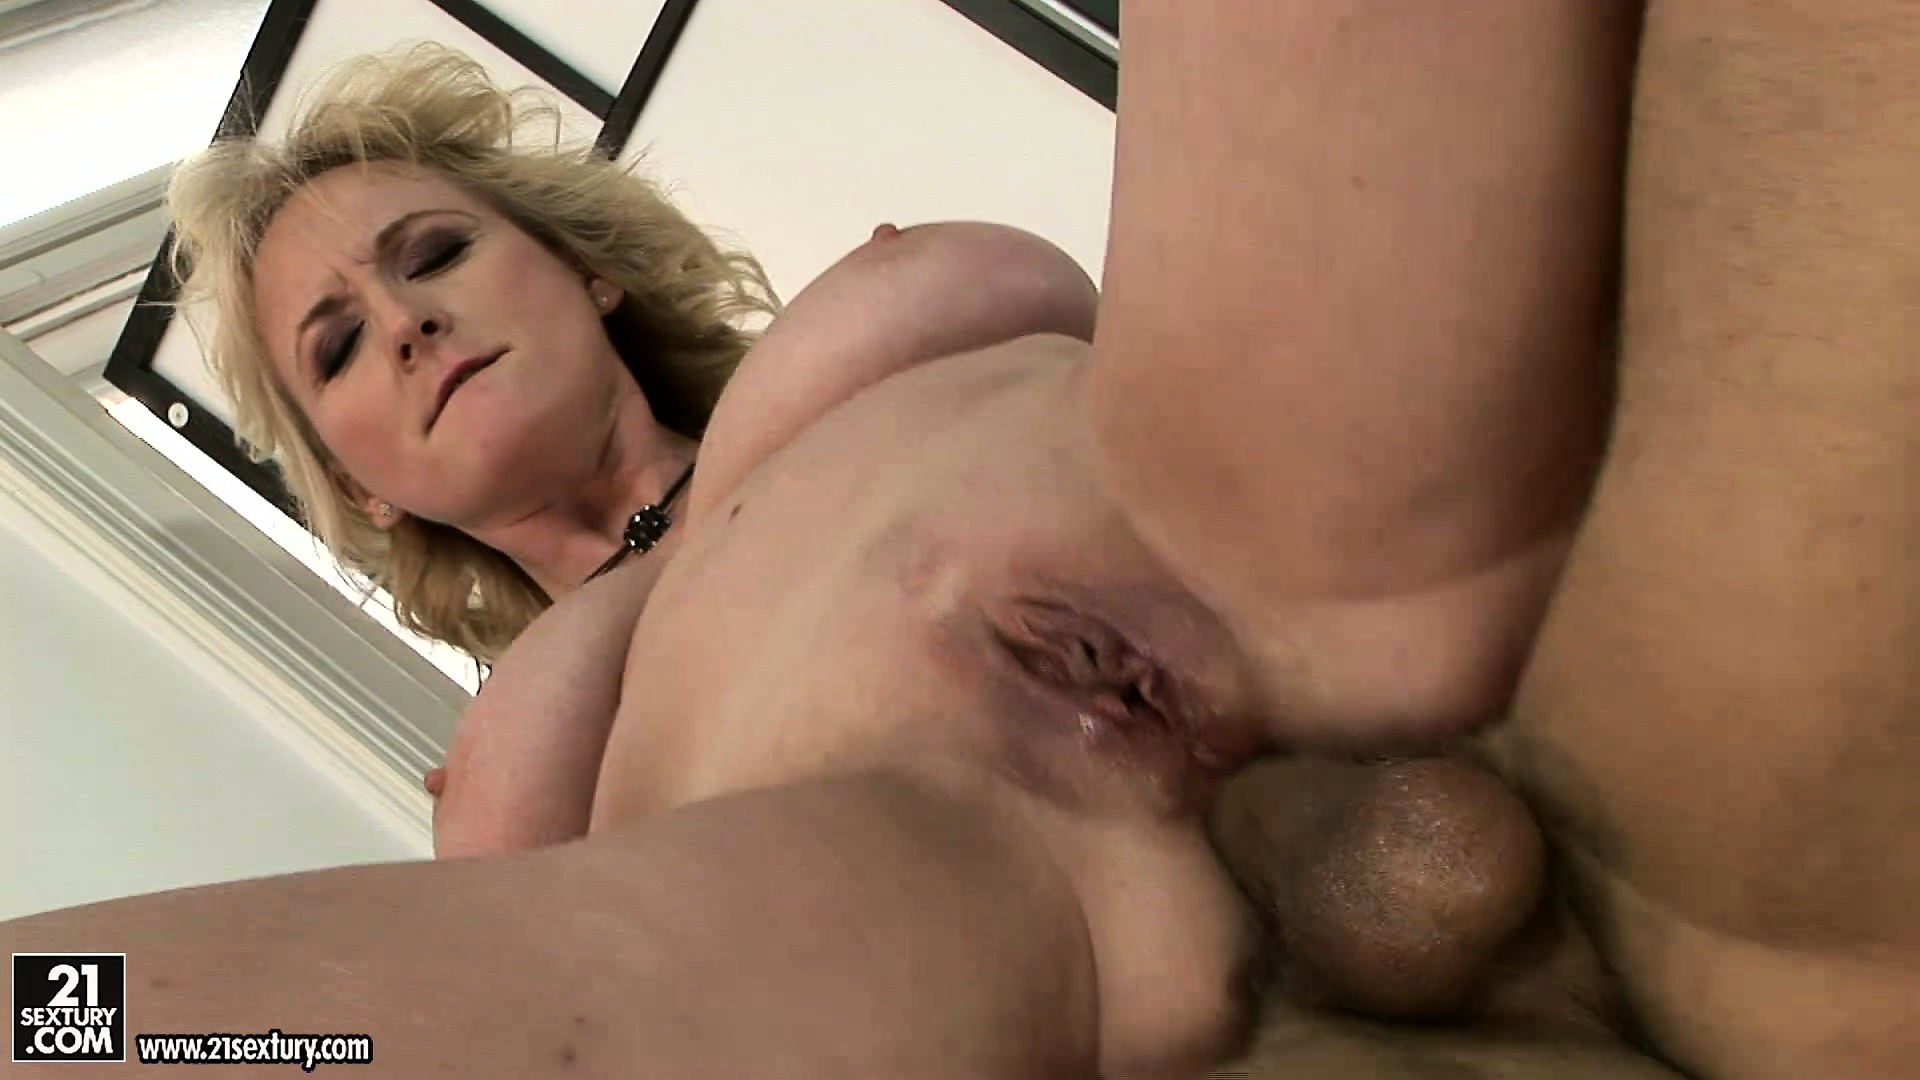 Sex Movie of Chubby Blonde Milf Gets Licked And Blows, Takes His Cock In Both Holes